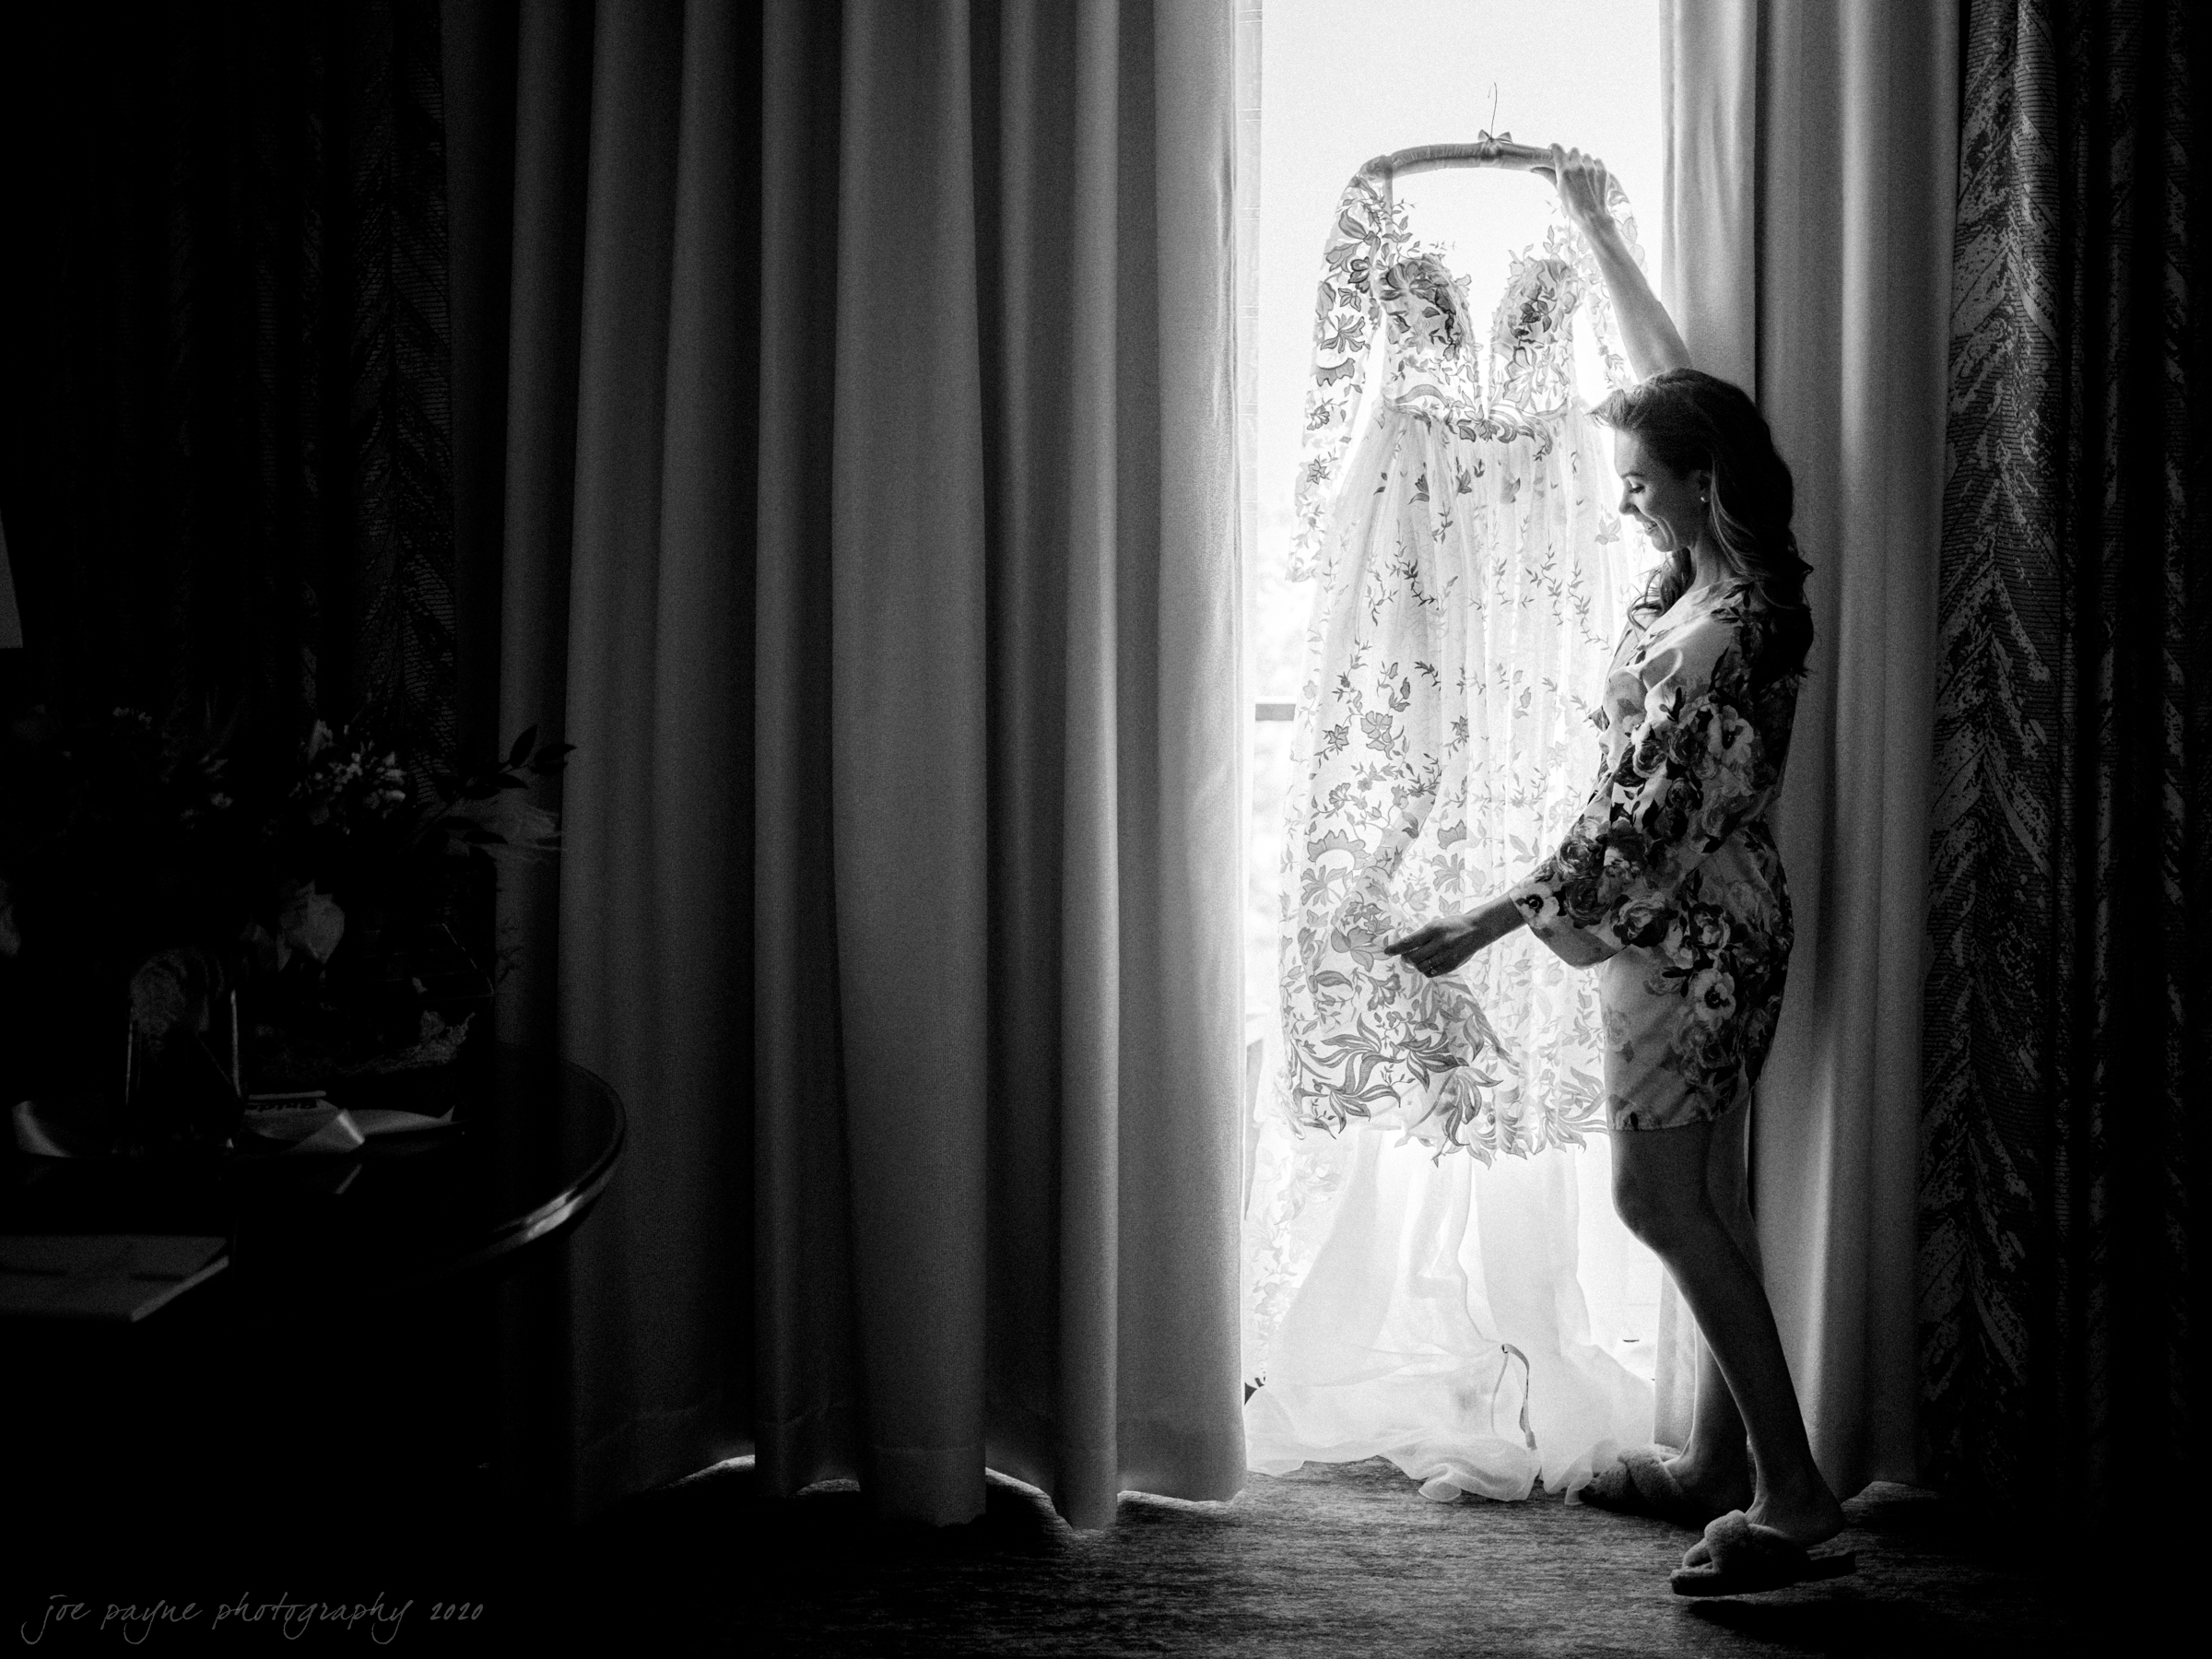 umstead hotel park wedding photography brittany harrison 1